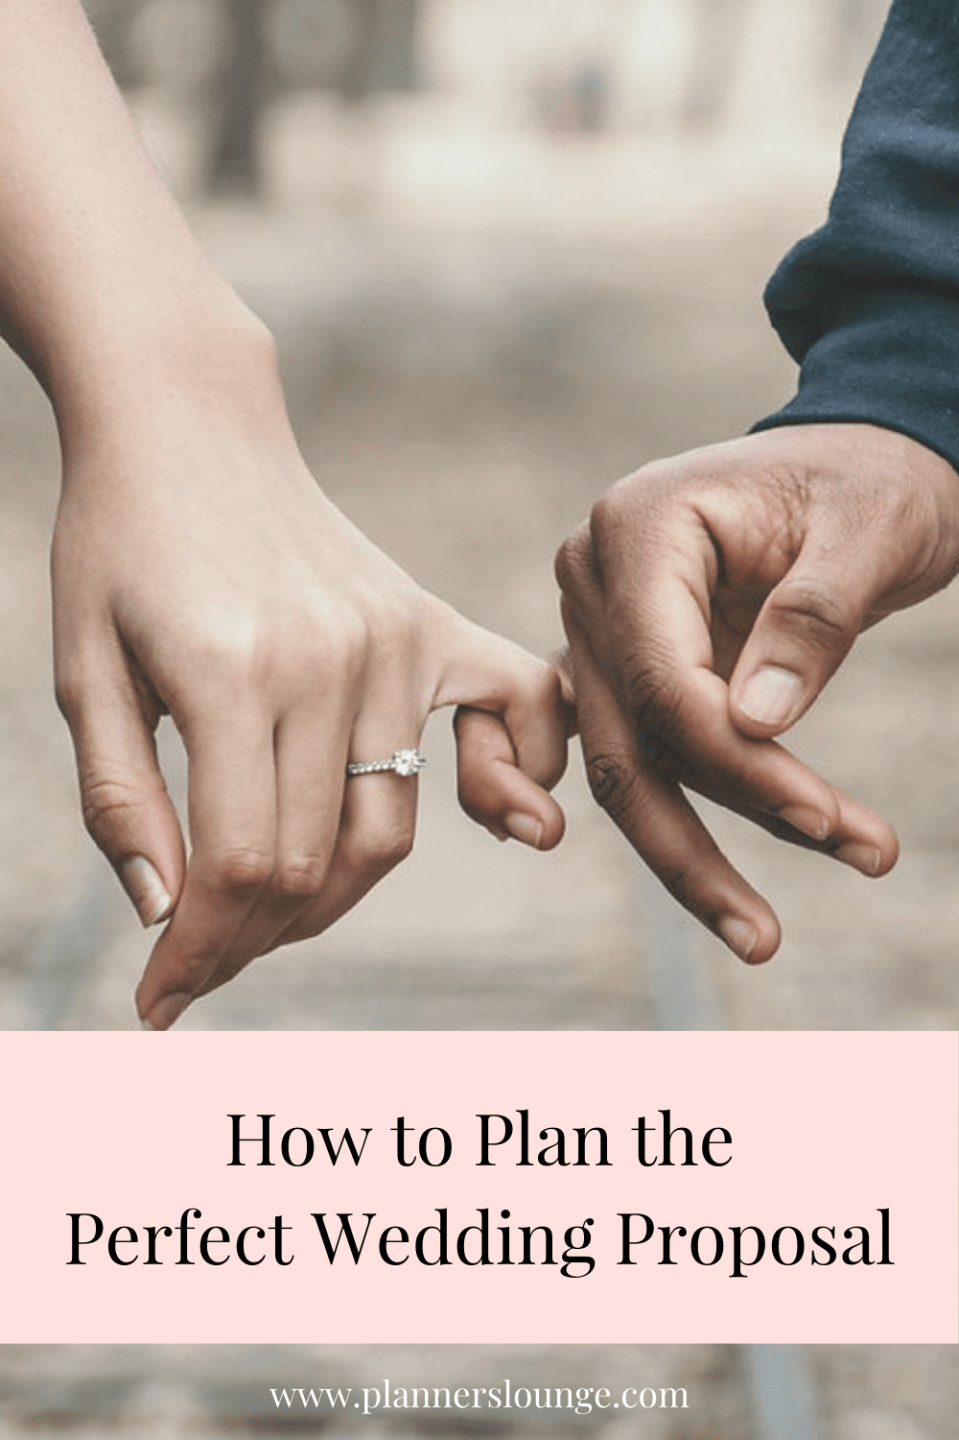 How to Help Your Client Plan the Perfect Wedding Proposal